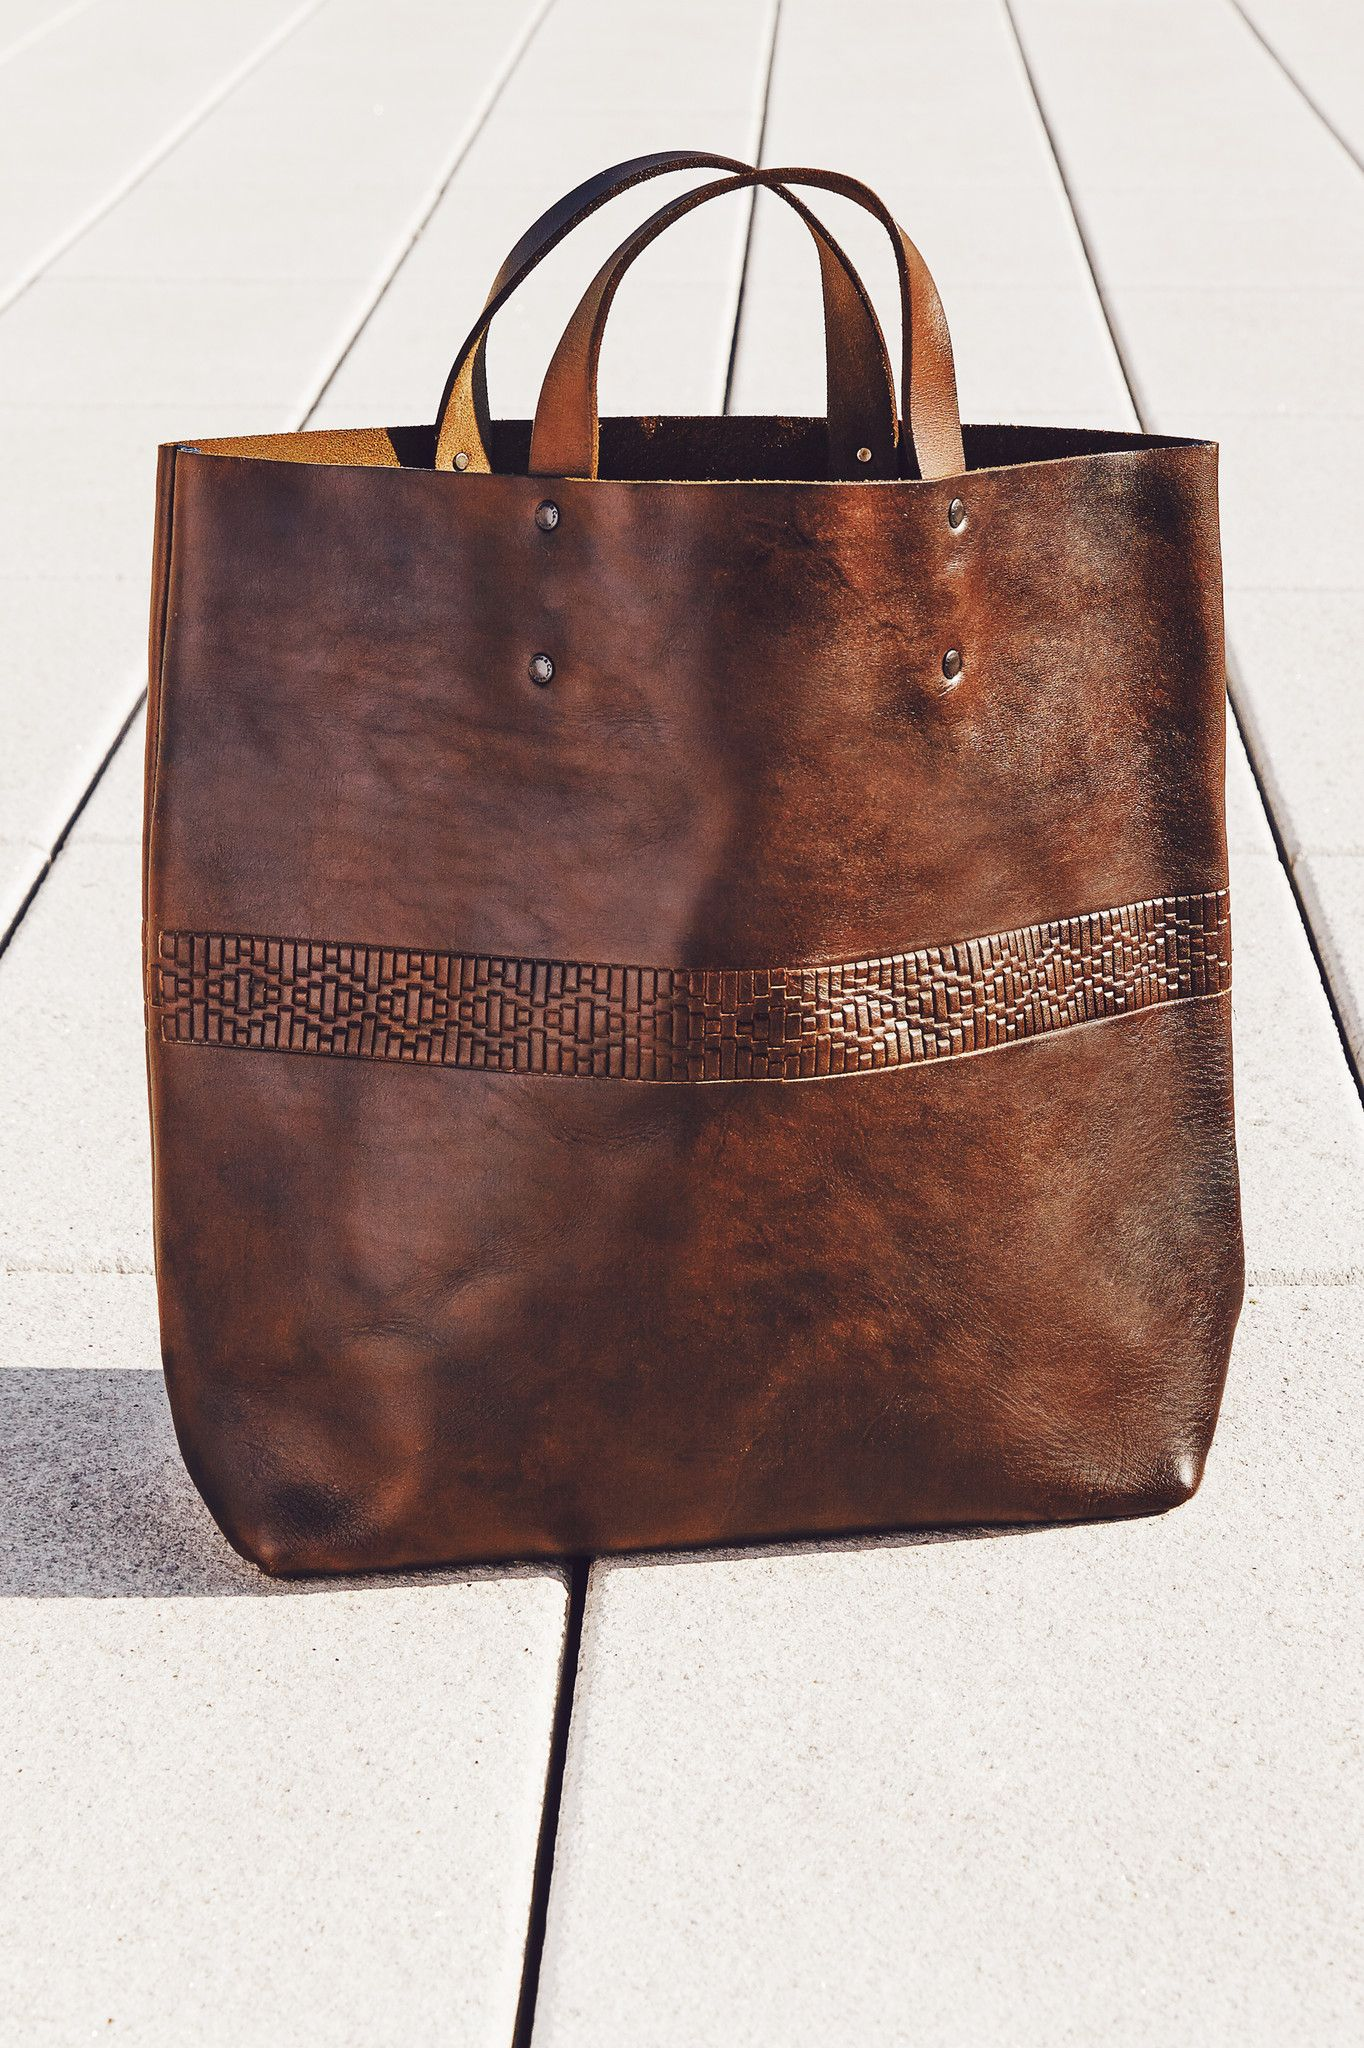 fd68280d2a9 Interlaced Leather Tote   Accompany   Health beauty   Pinterest ...